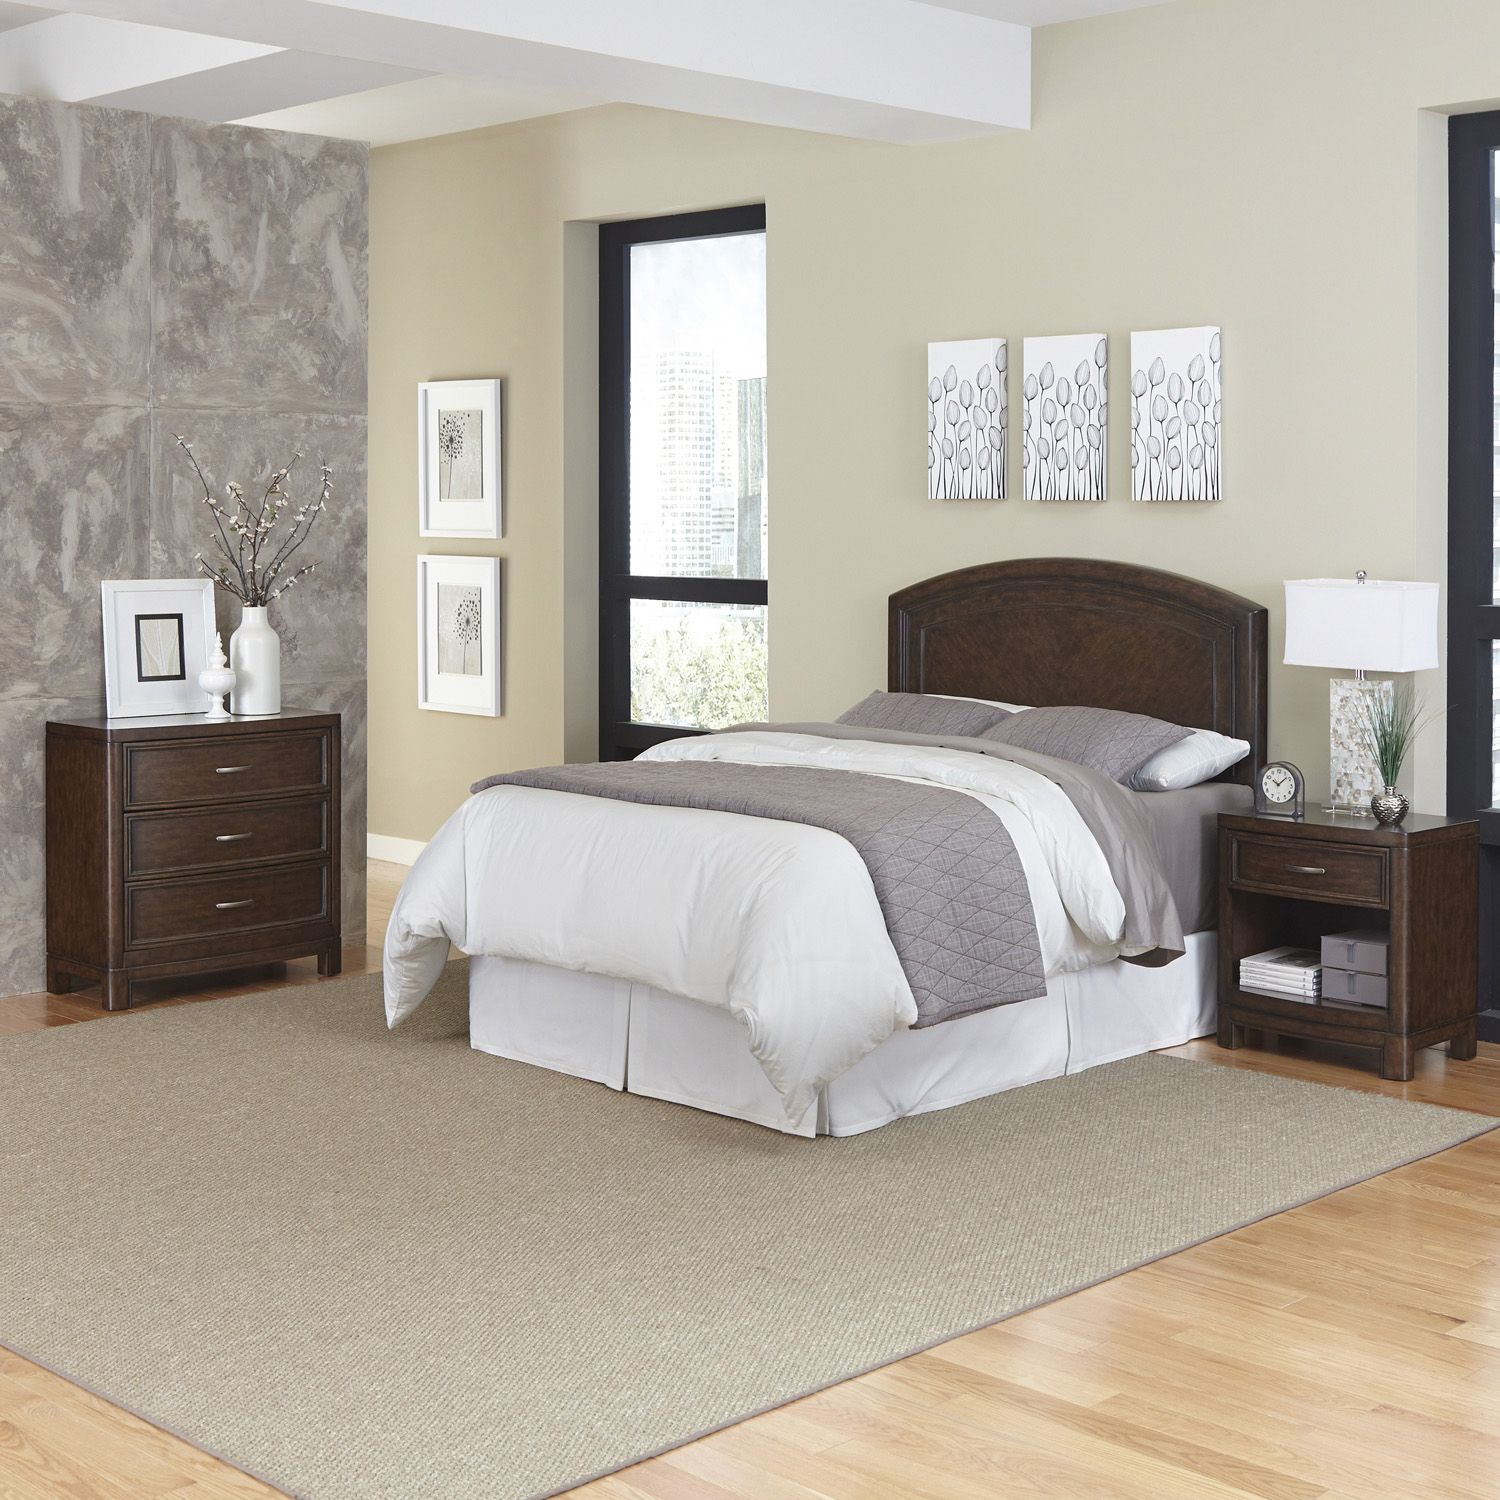 Lovely Home Styles Crescent Hill piece Bedroom Set